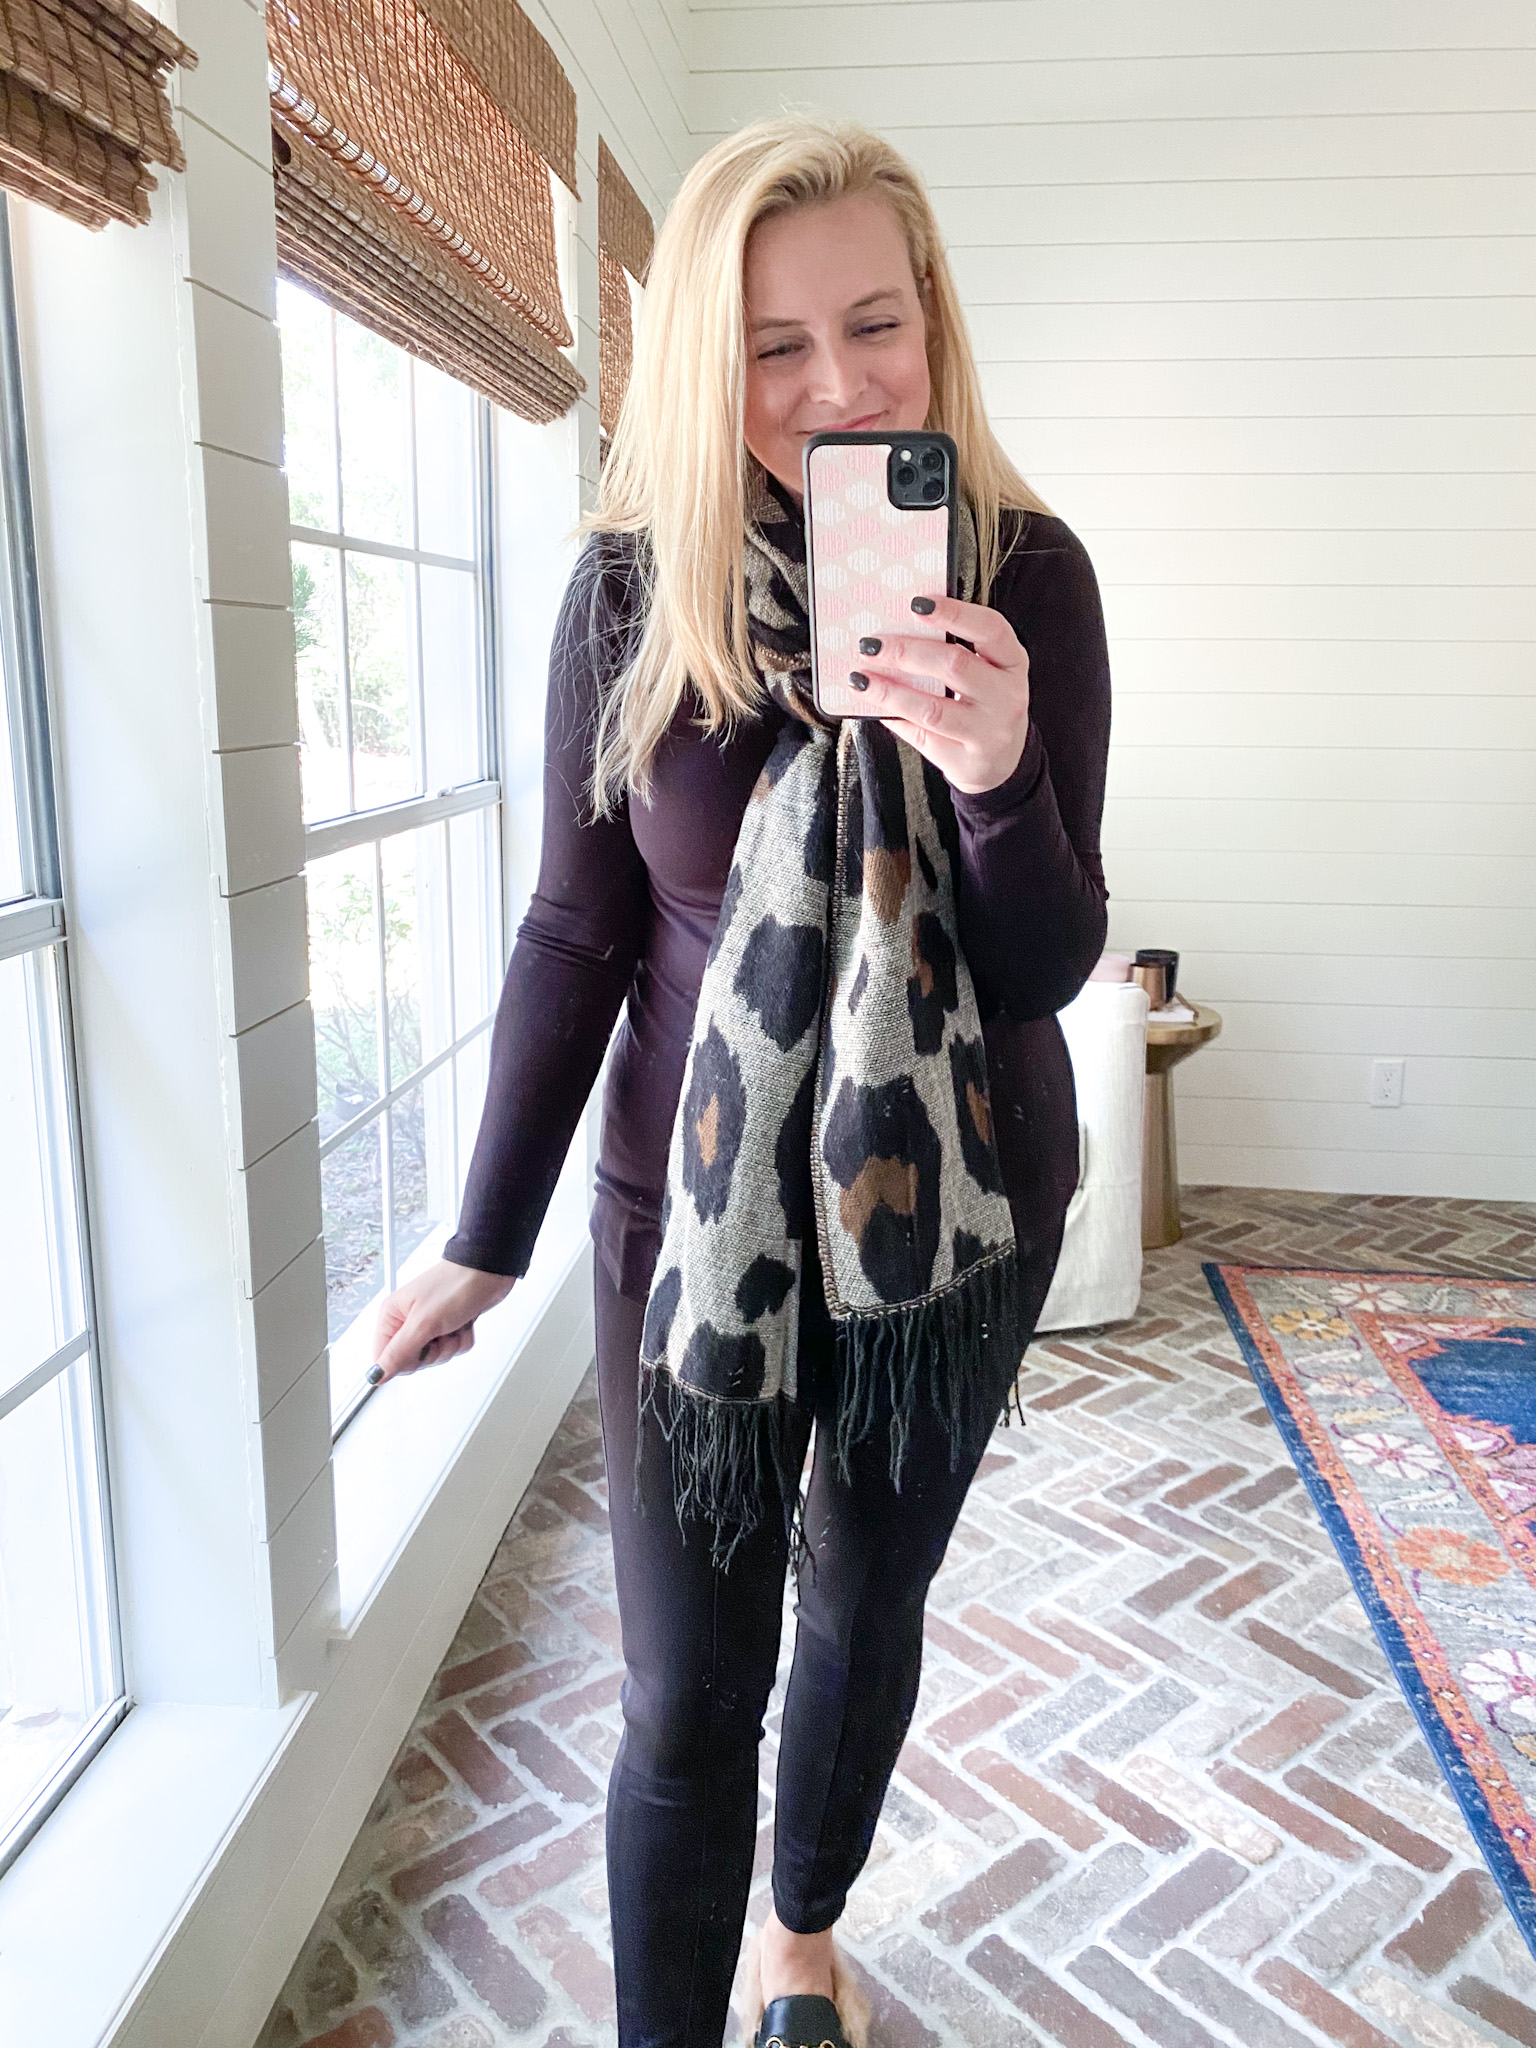 Prime Day by popular Houston fashion blog, Fancy Ashley: image of a woman wearing a Amazon leopard print scar, black long sleeve t-shirt, black legging, and black mules.